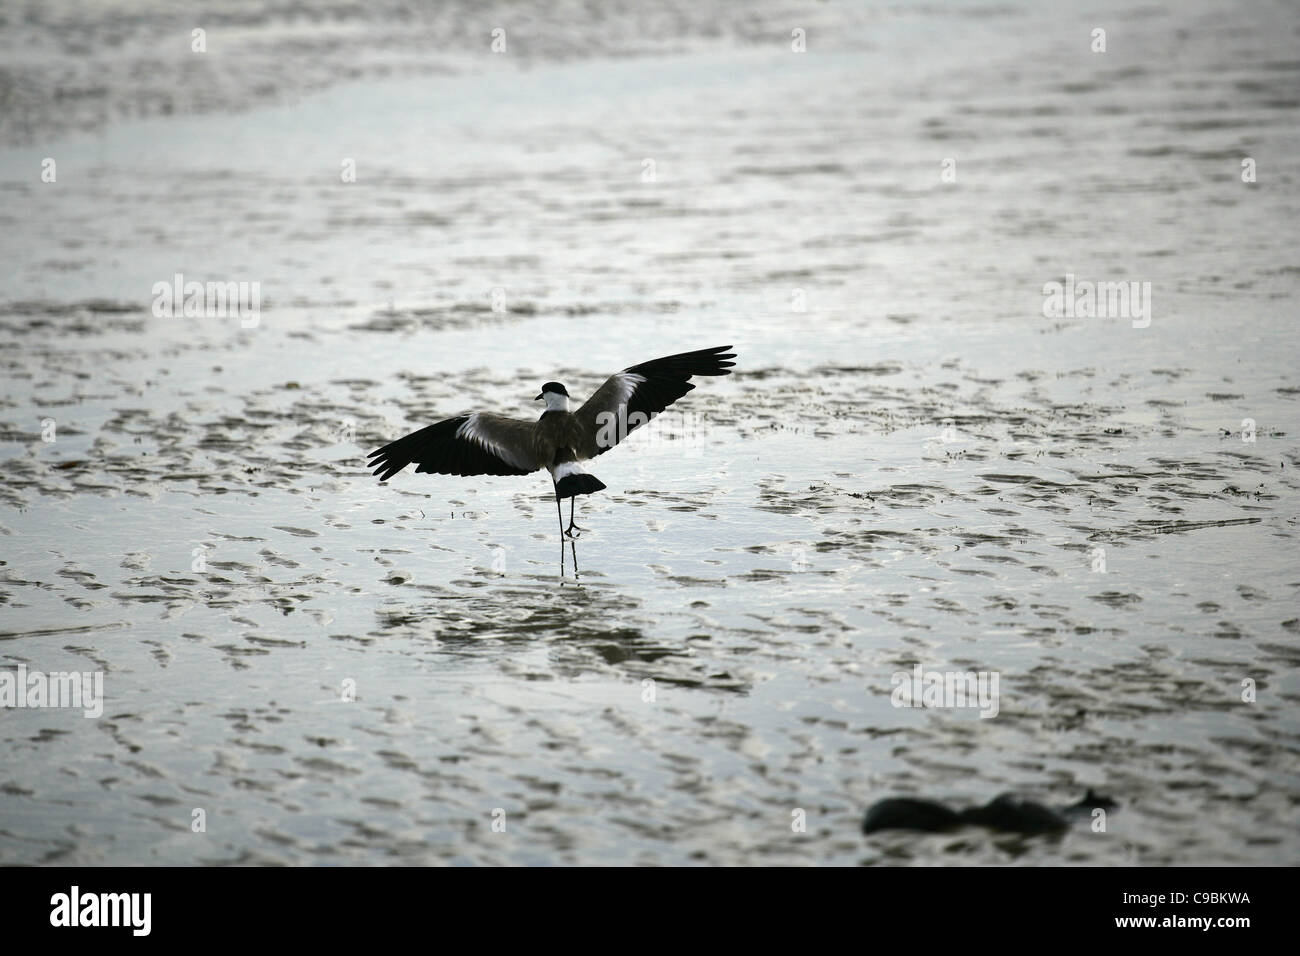 Africa, Guinea-Bissau, Bird on wet beach - Stock Image